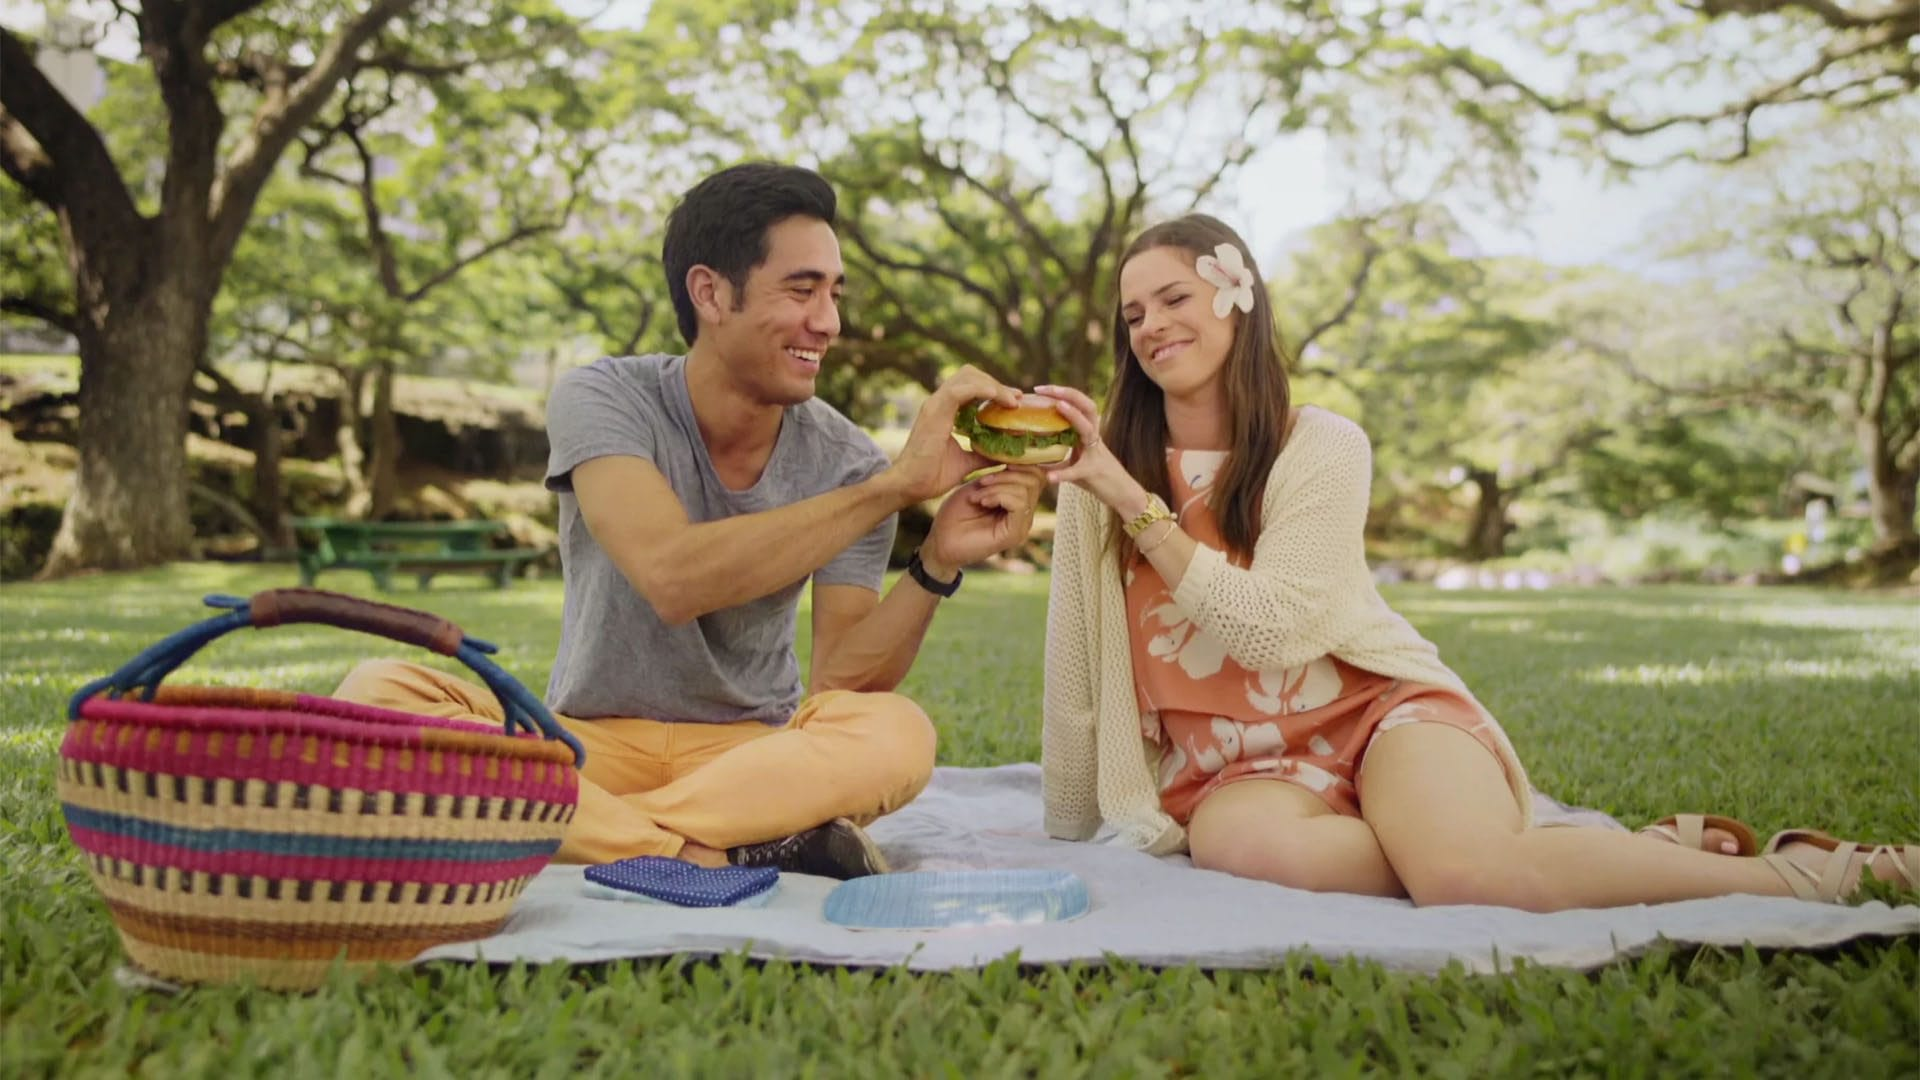 McDonald's of Hawaii: Amazing Ingredients Campaign - Have a picnic with Zach King!